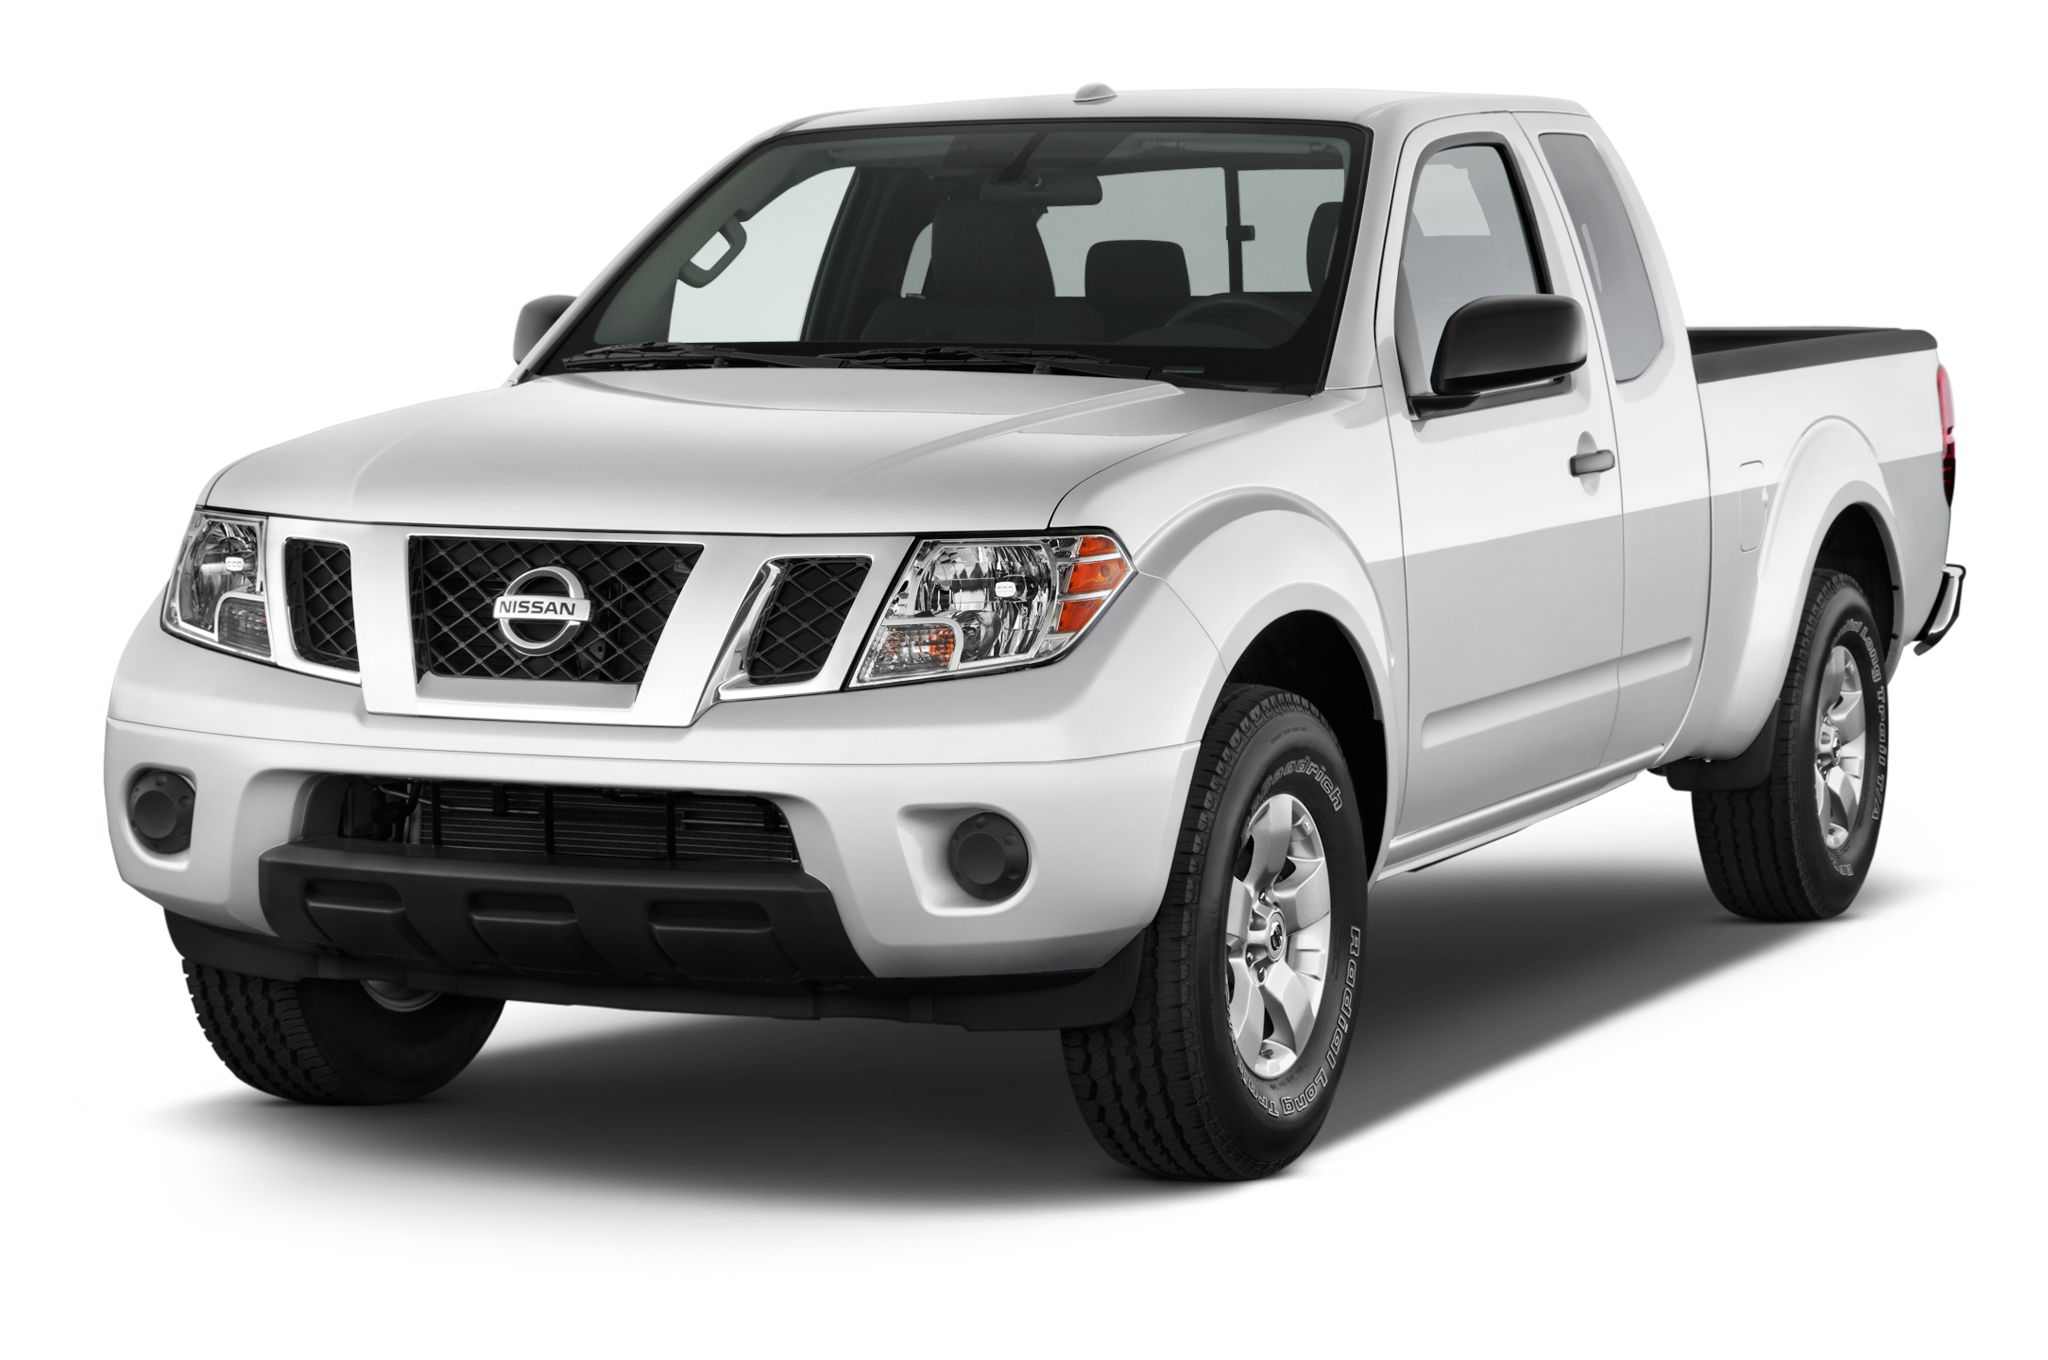 2014 nissan pathfinder wiring diagram 2015 nissan frontier sv king 4wd truck angular front png  2048  2015 nissan frontier sv king 4wd truck